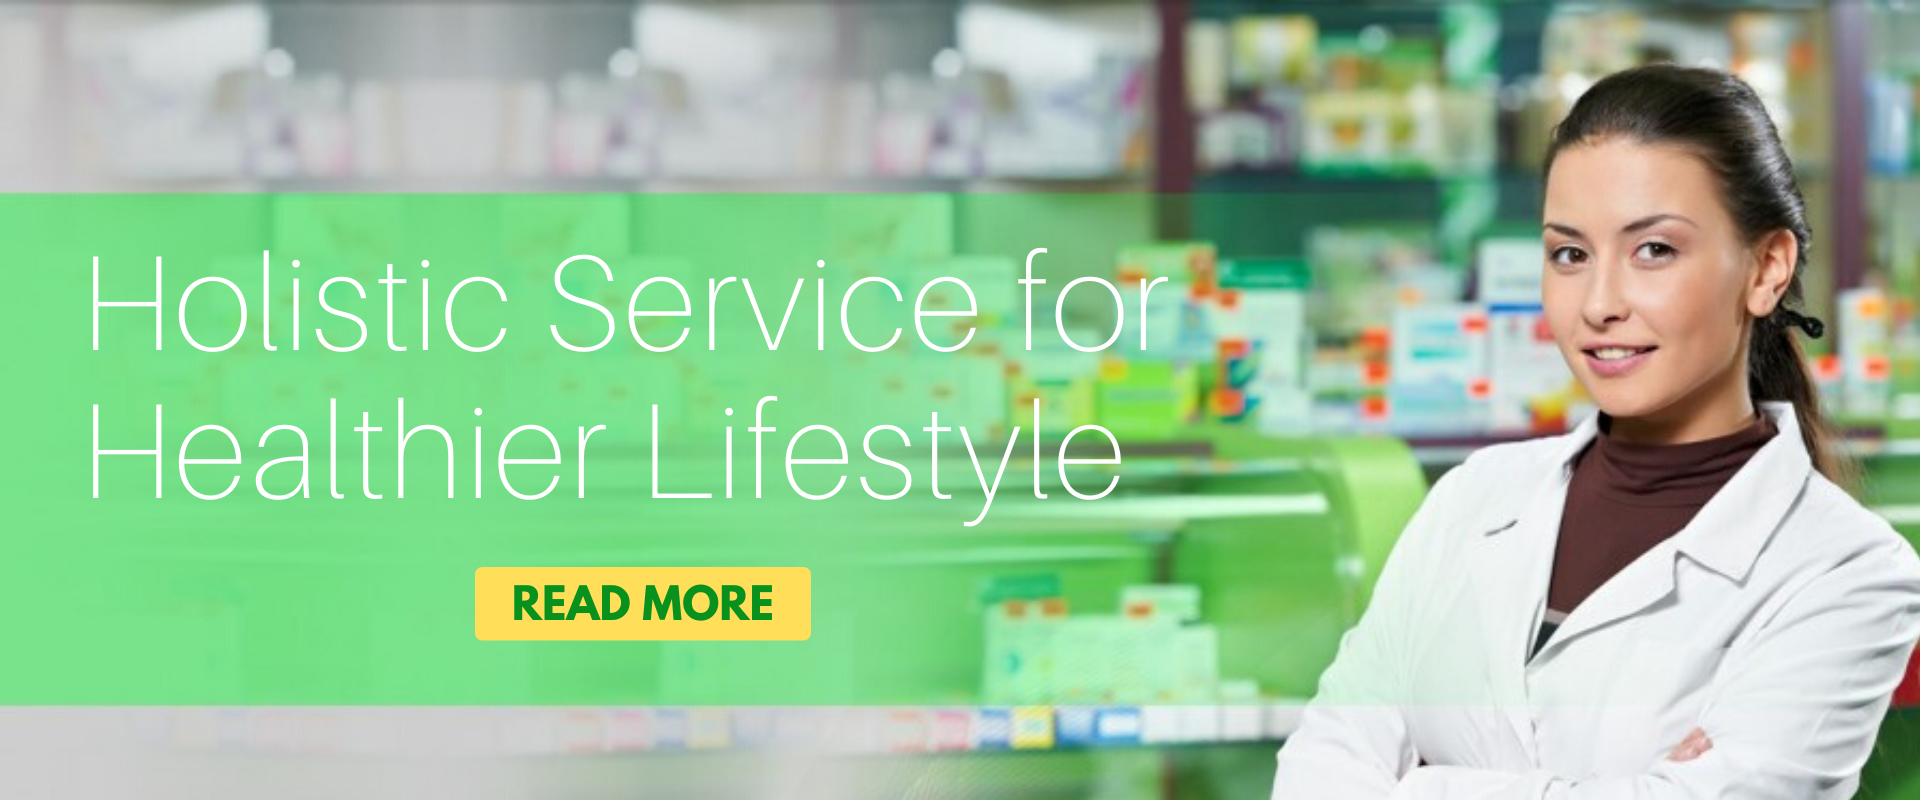 Holistic Service for Healthier Lifestyle